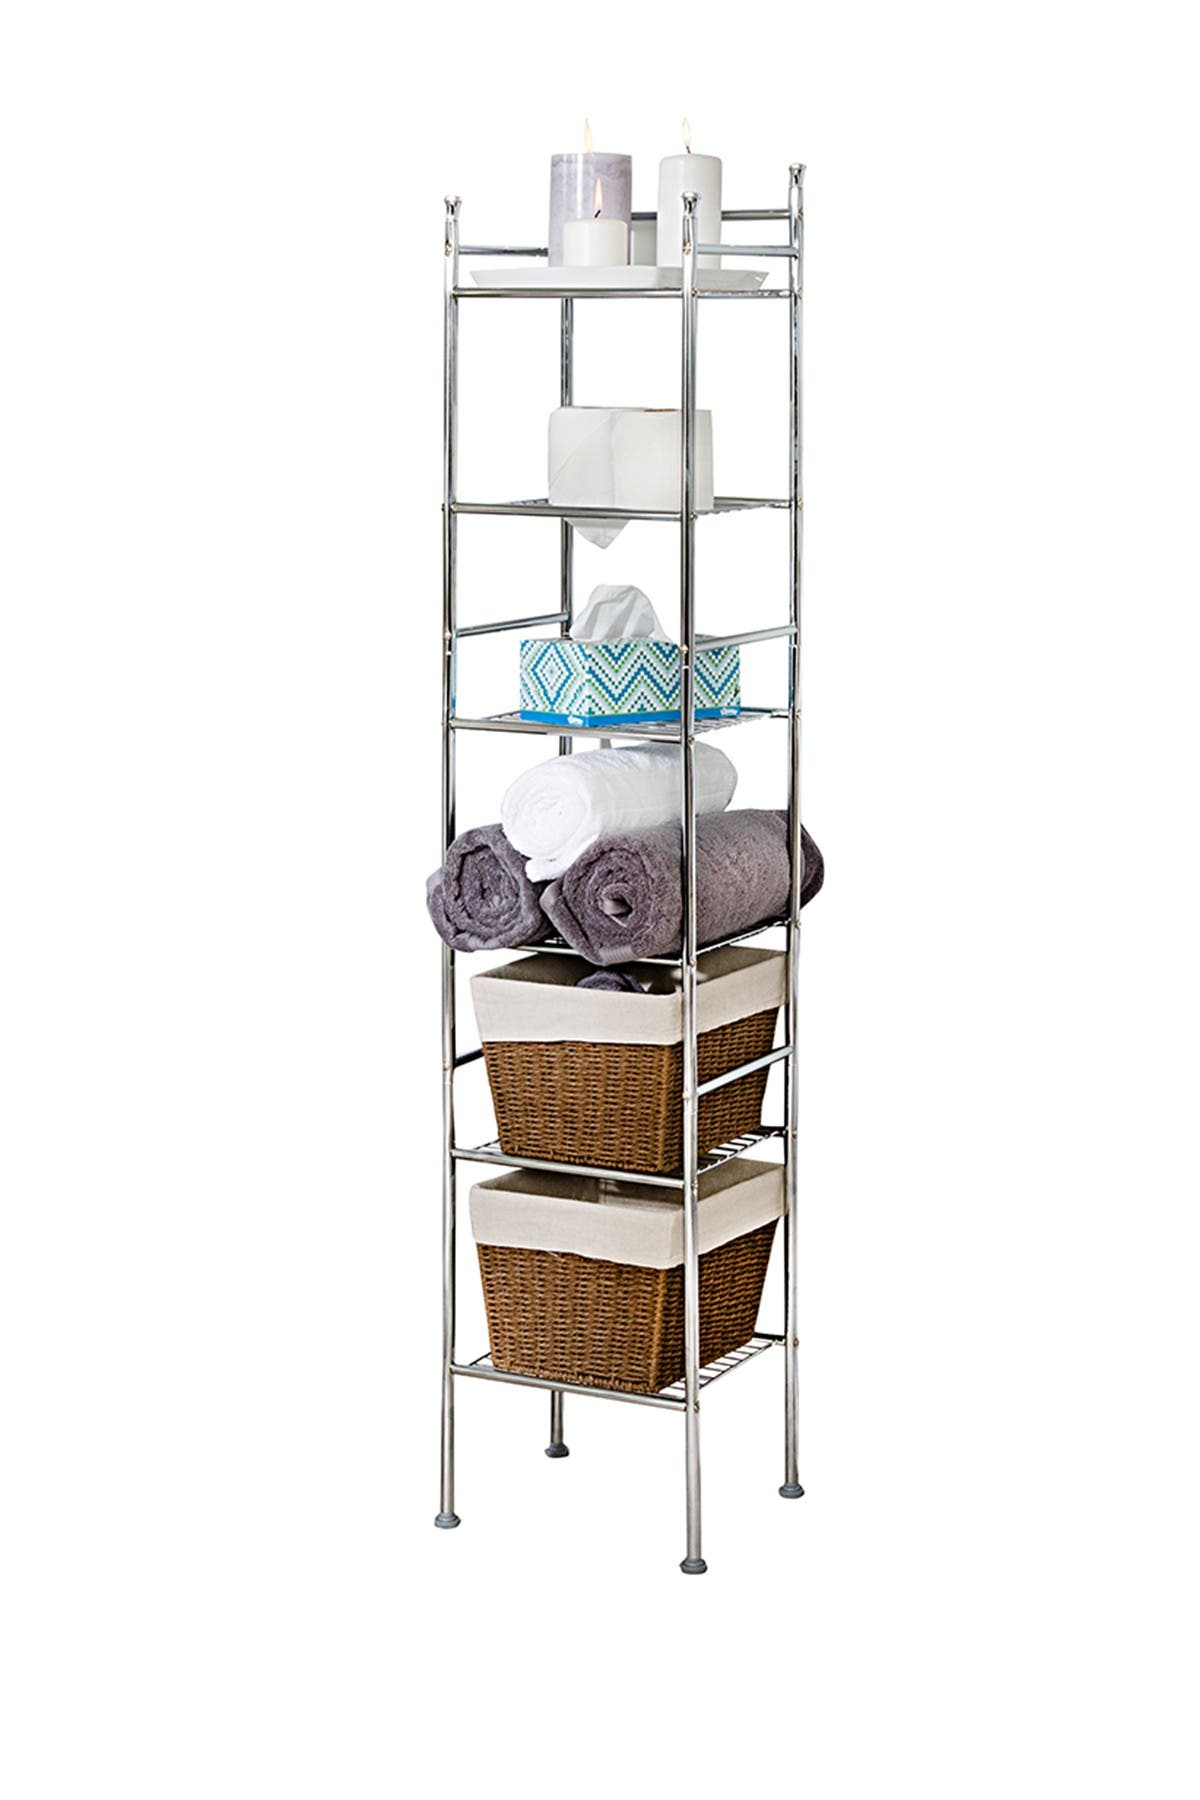 Image of Honey-Can-Do Chrome 6-Tier Metal Tower